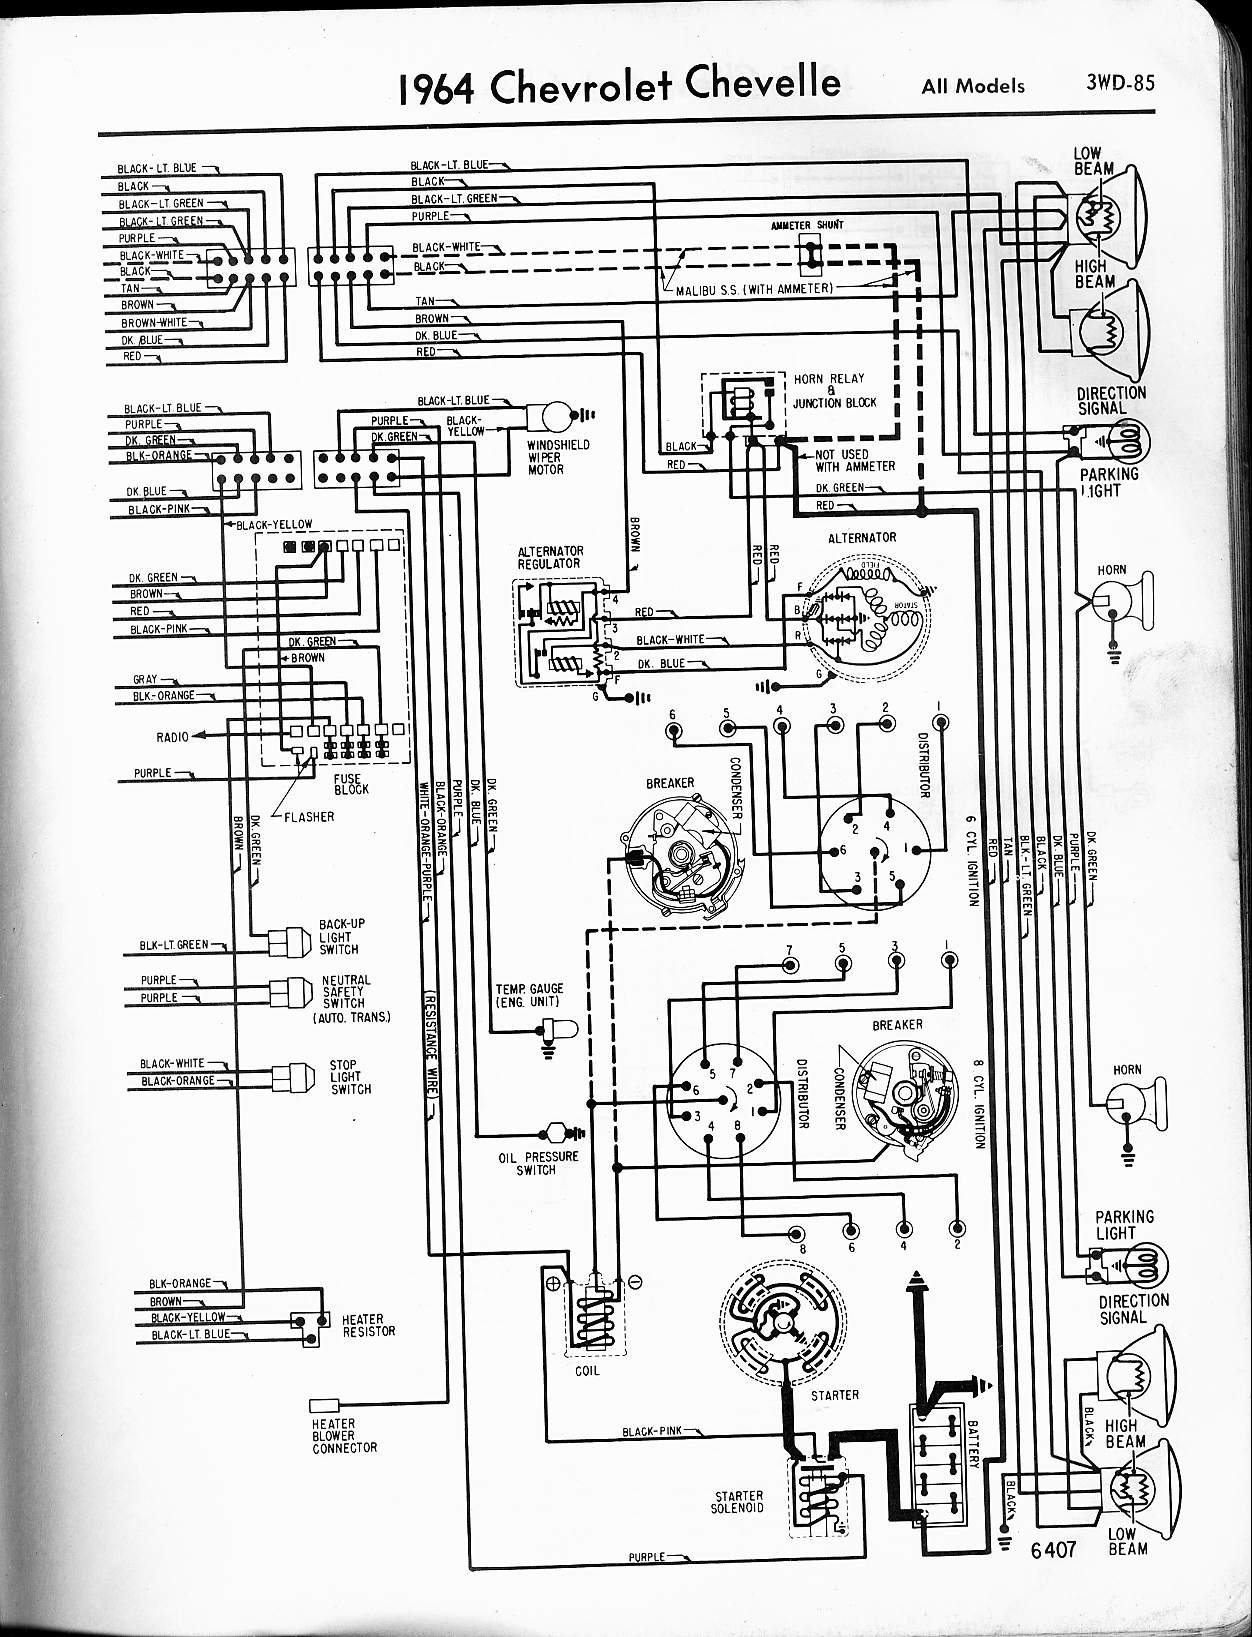 MWireChev64_3WD 085 chevy diagrams 1964 chevy c10 wiring harness at n-0.co